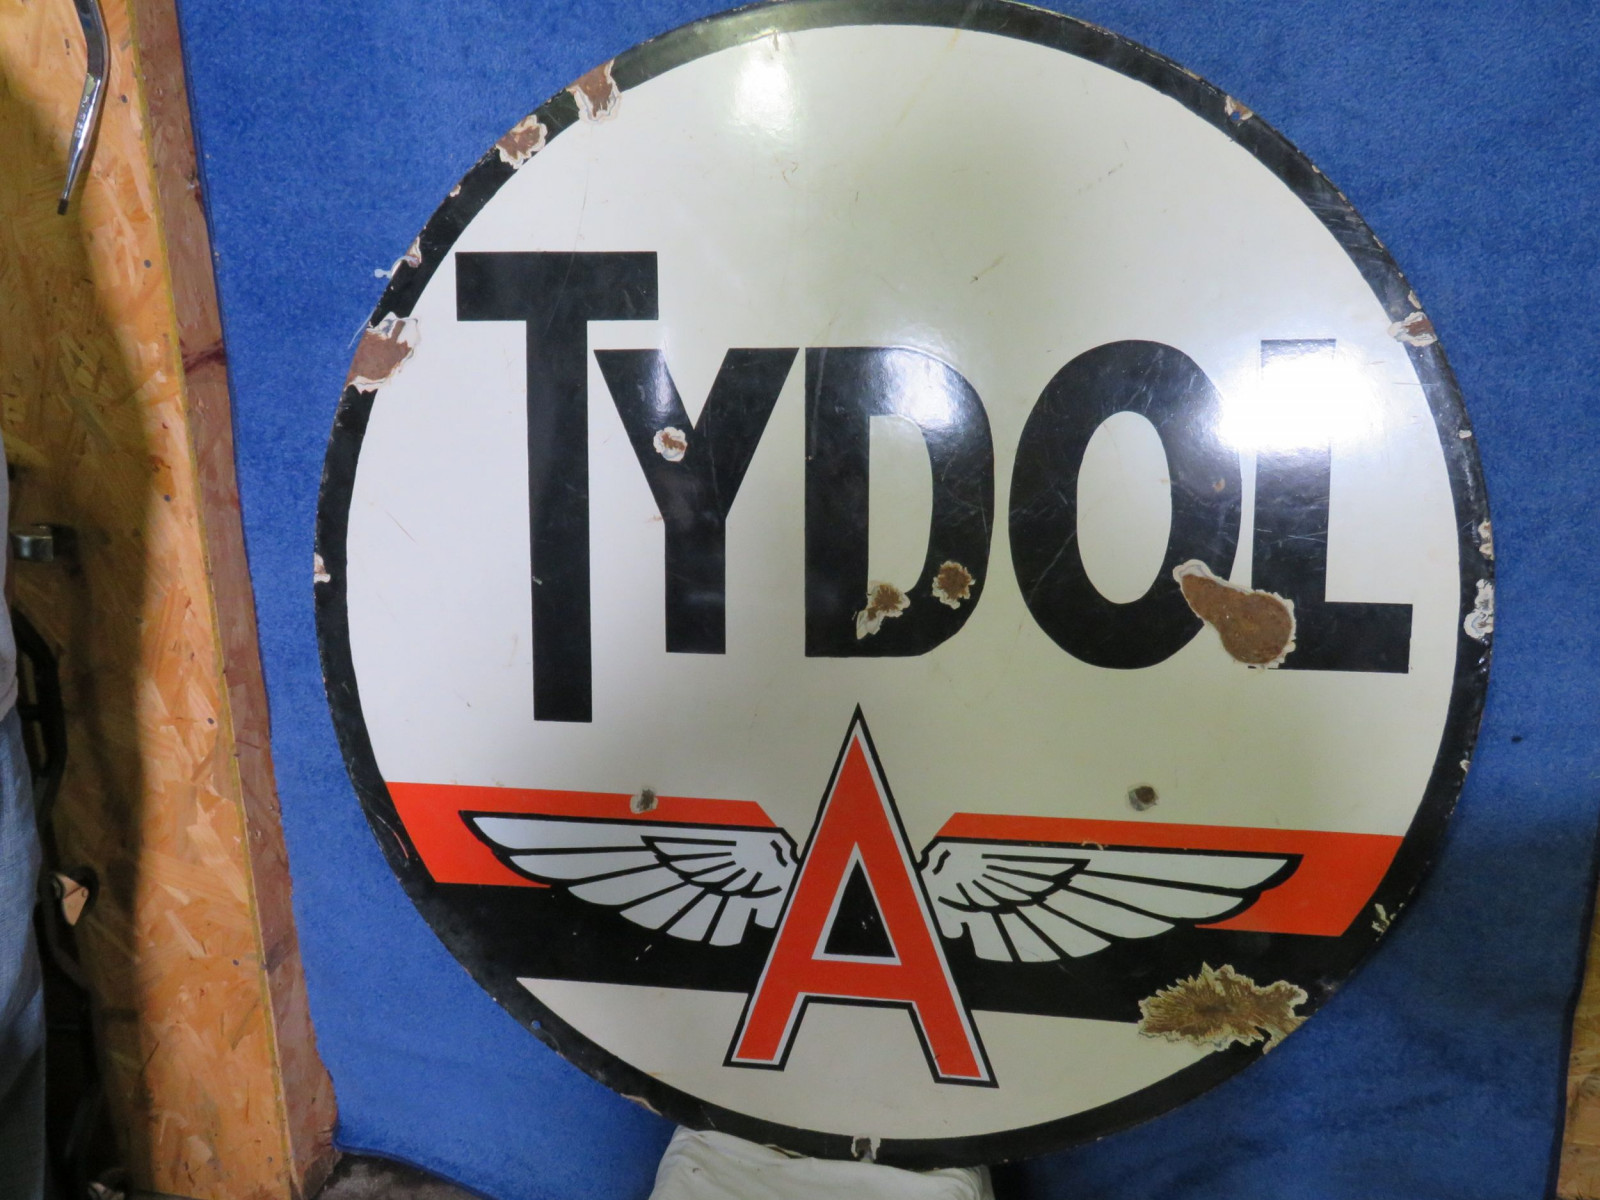 Tydol Flying A DS Porcelain Sign - Image 2